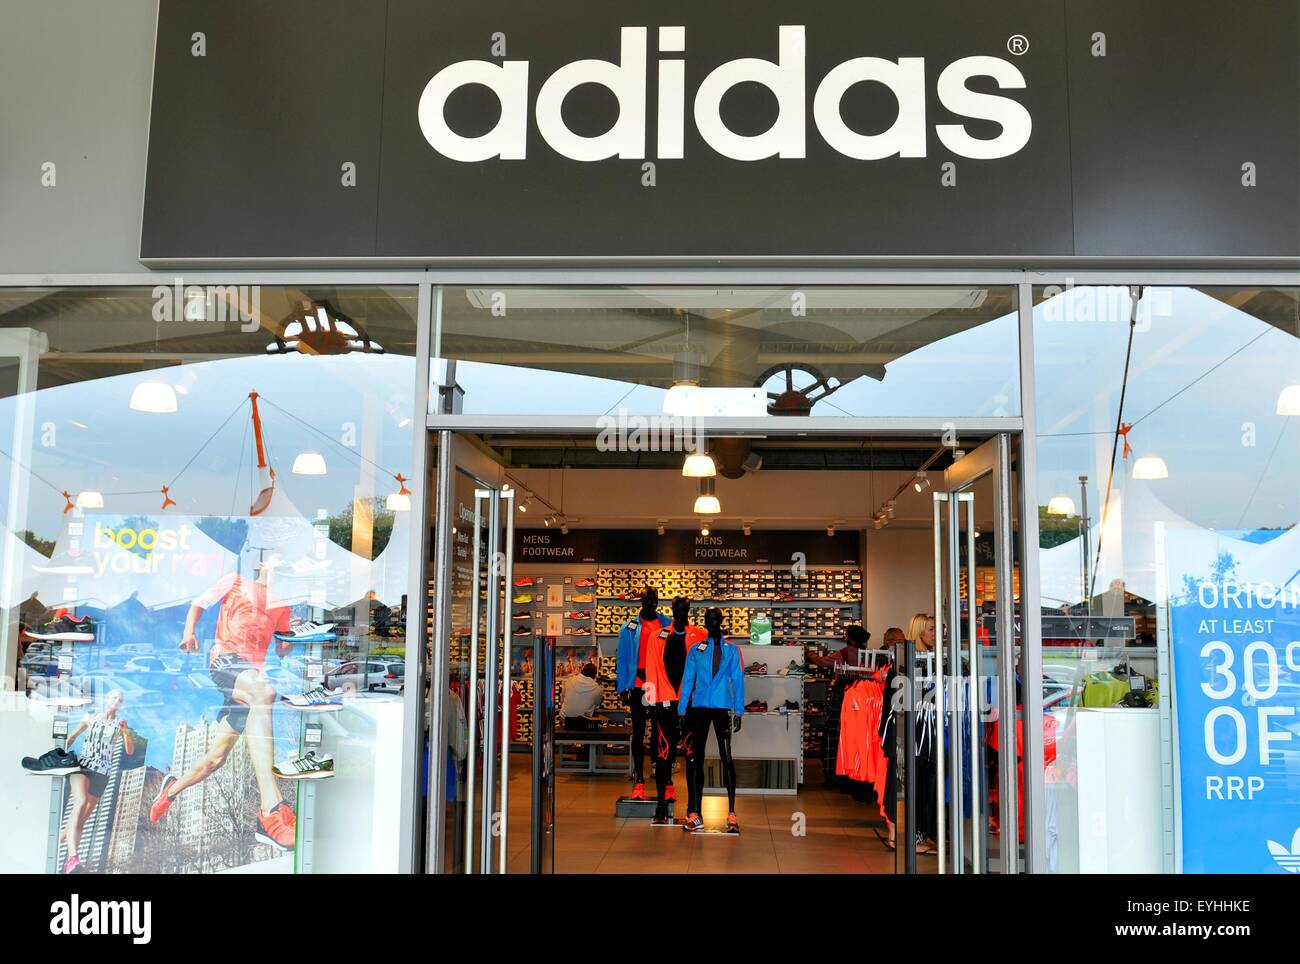 omitir trimestre gato  Adidas Store London High Resolution Stock Photography and Images - Alamy